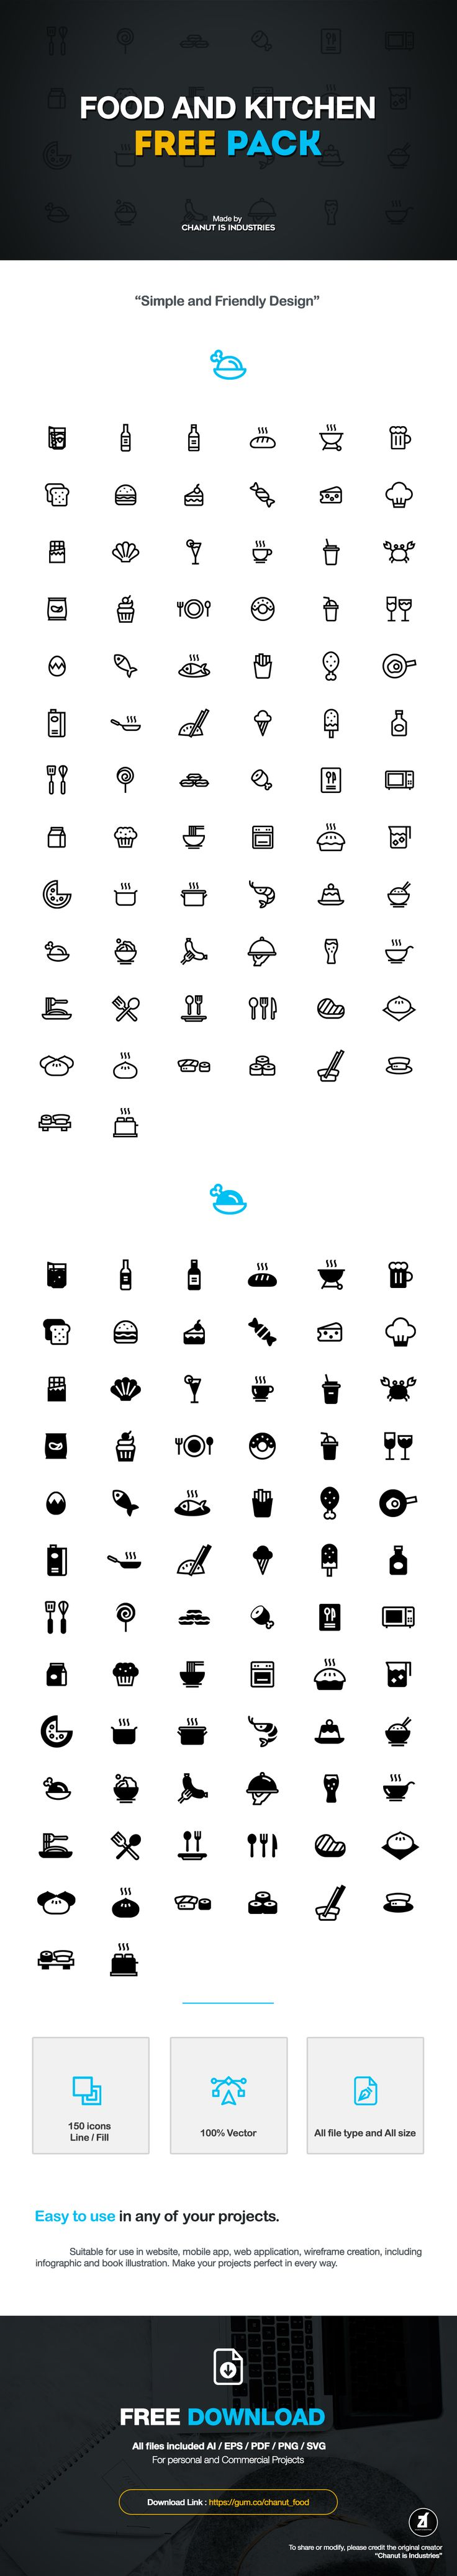 FREE! Food and Kitchen Icons by Chanut-is-Industries on Behance